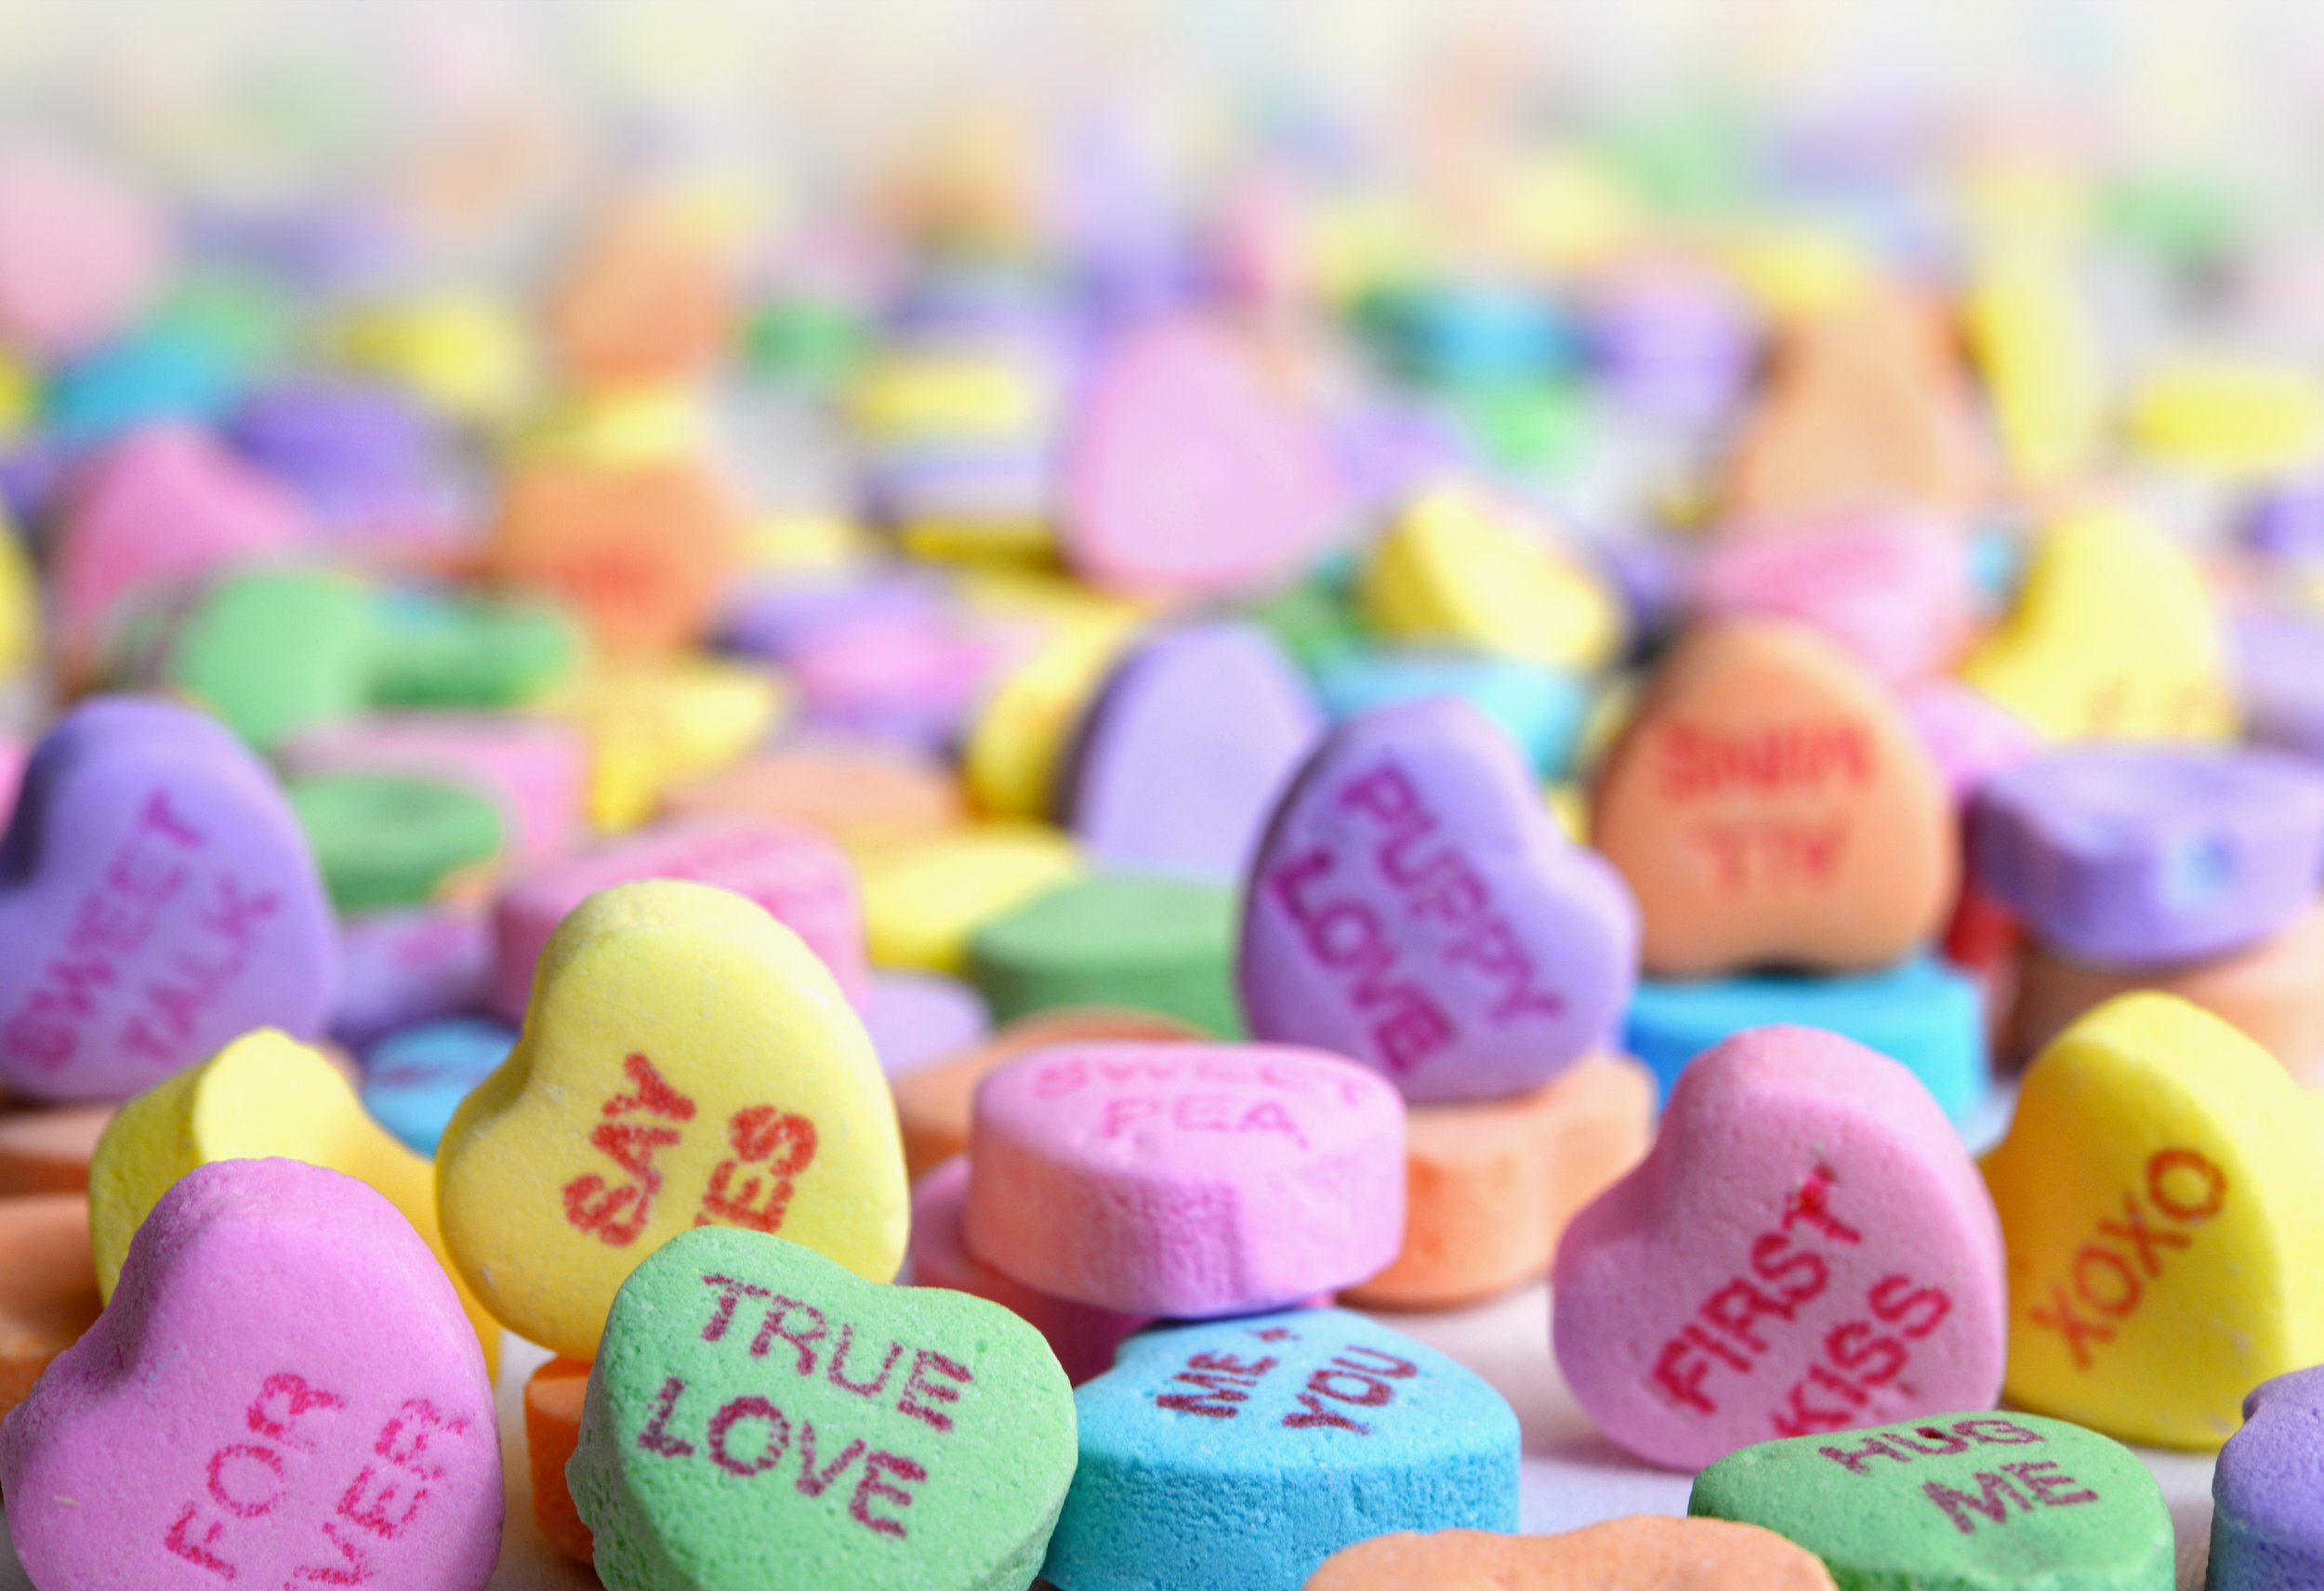 LOVE IS SWEET SHOW IT WITH SOME SUGAR - >>SHOP NOW>>Brach's classic tiny conversation hearts